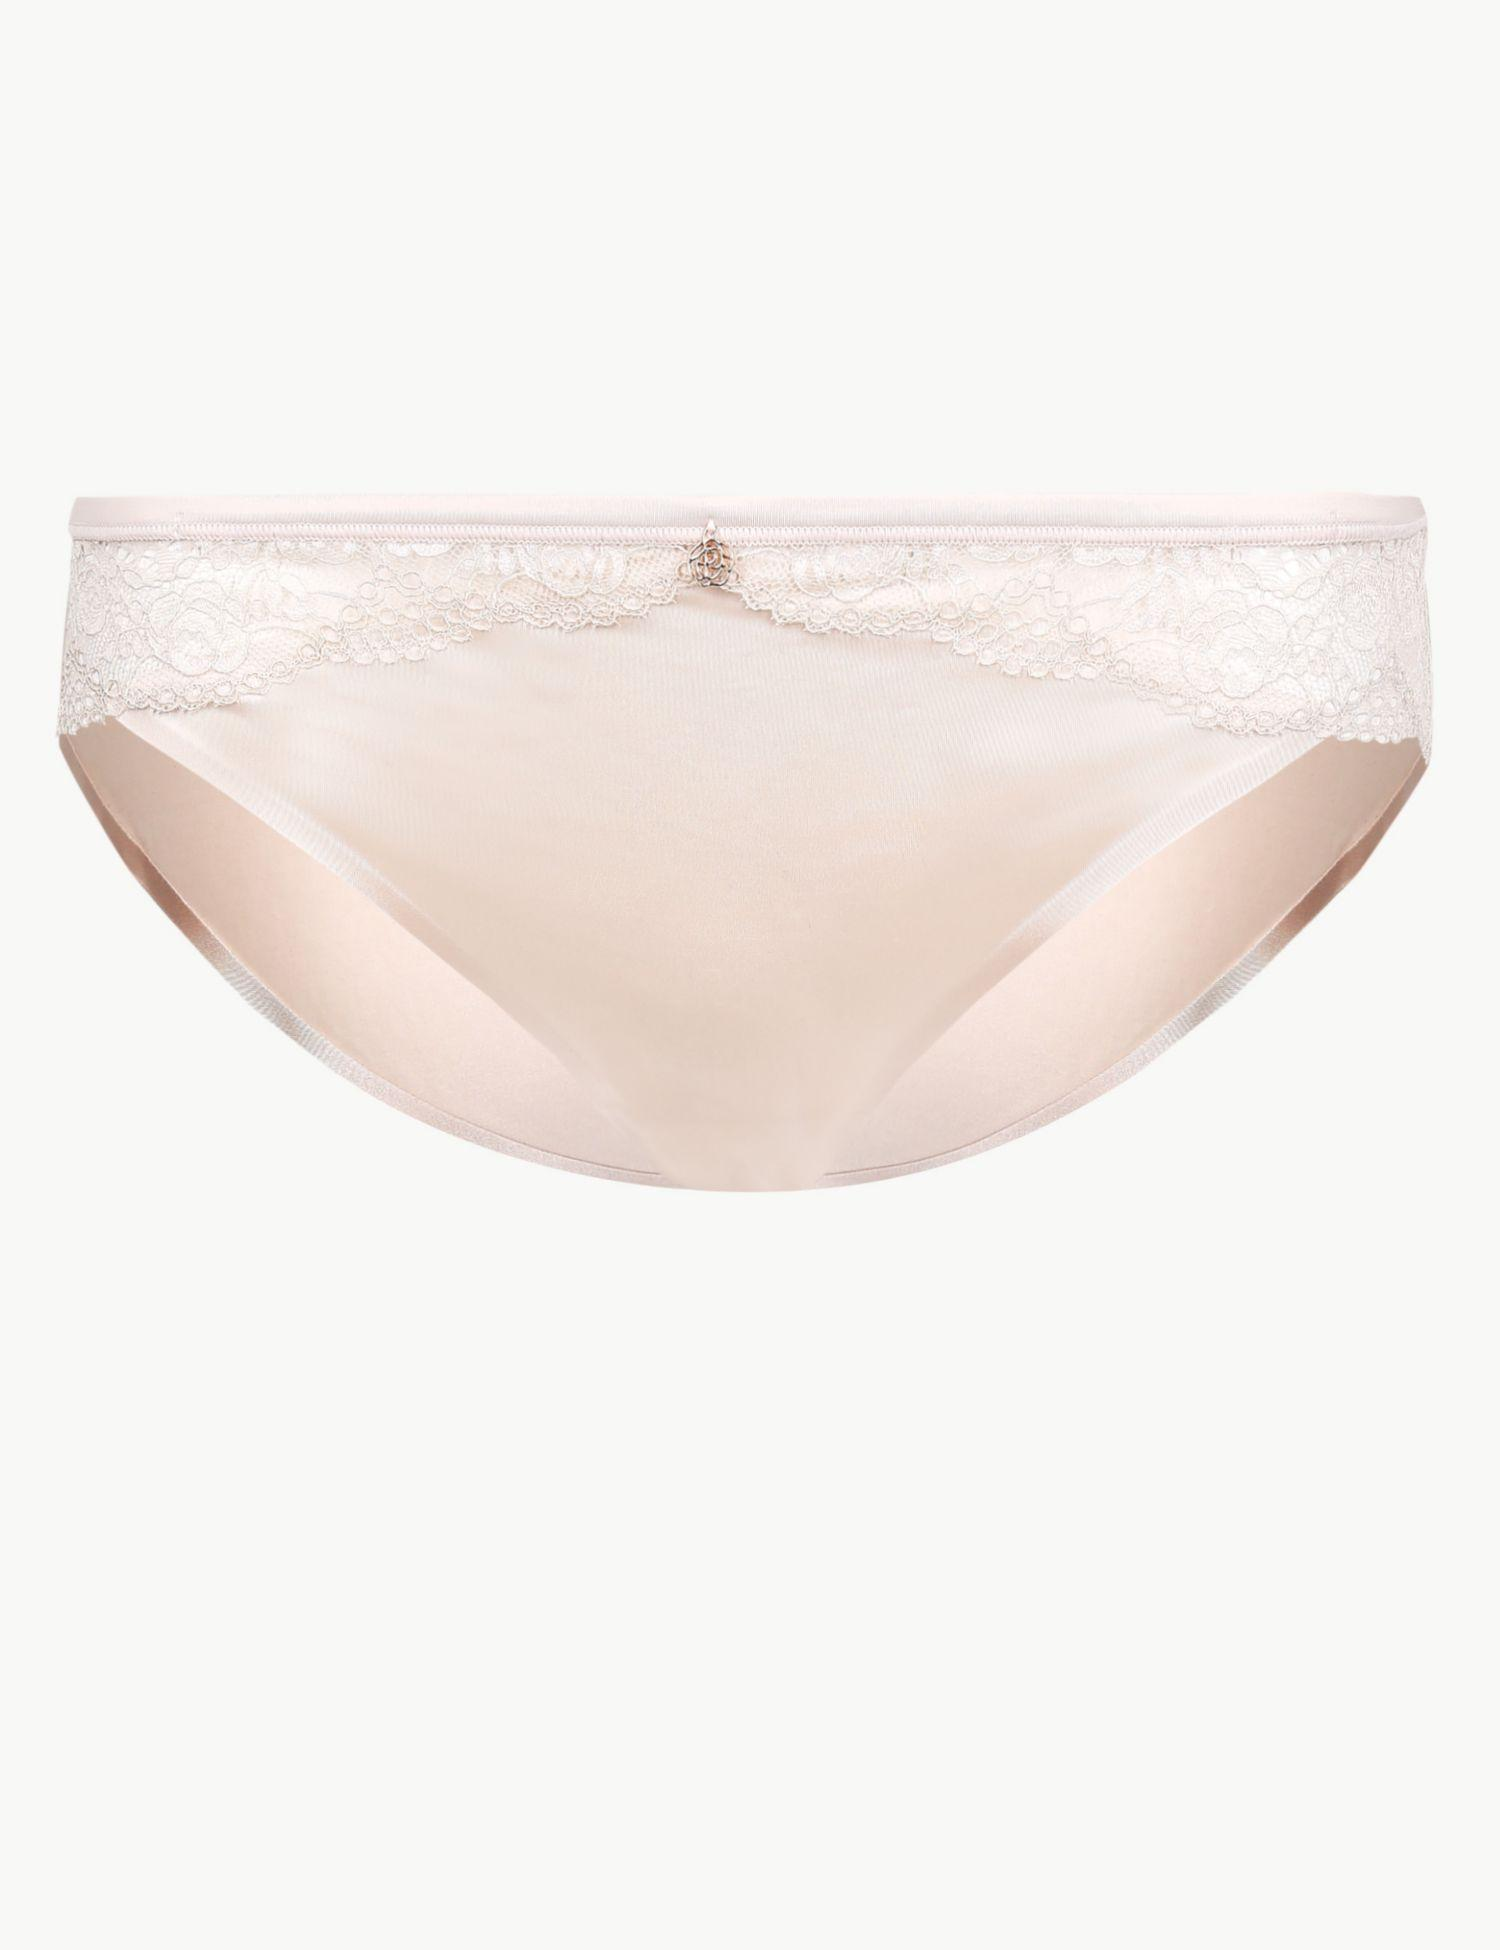 e9bf71f28250a Marks & Spencer Smoothing No Vpl Brazilian Knickers in Black - Lyst